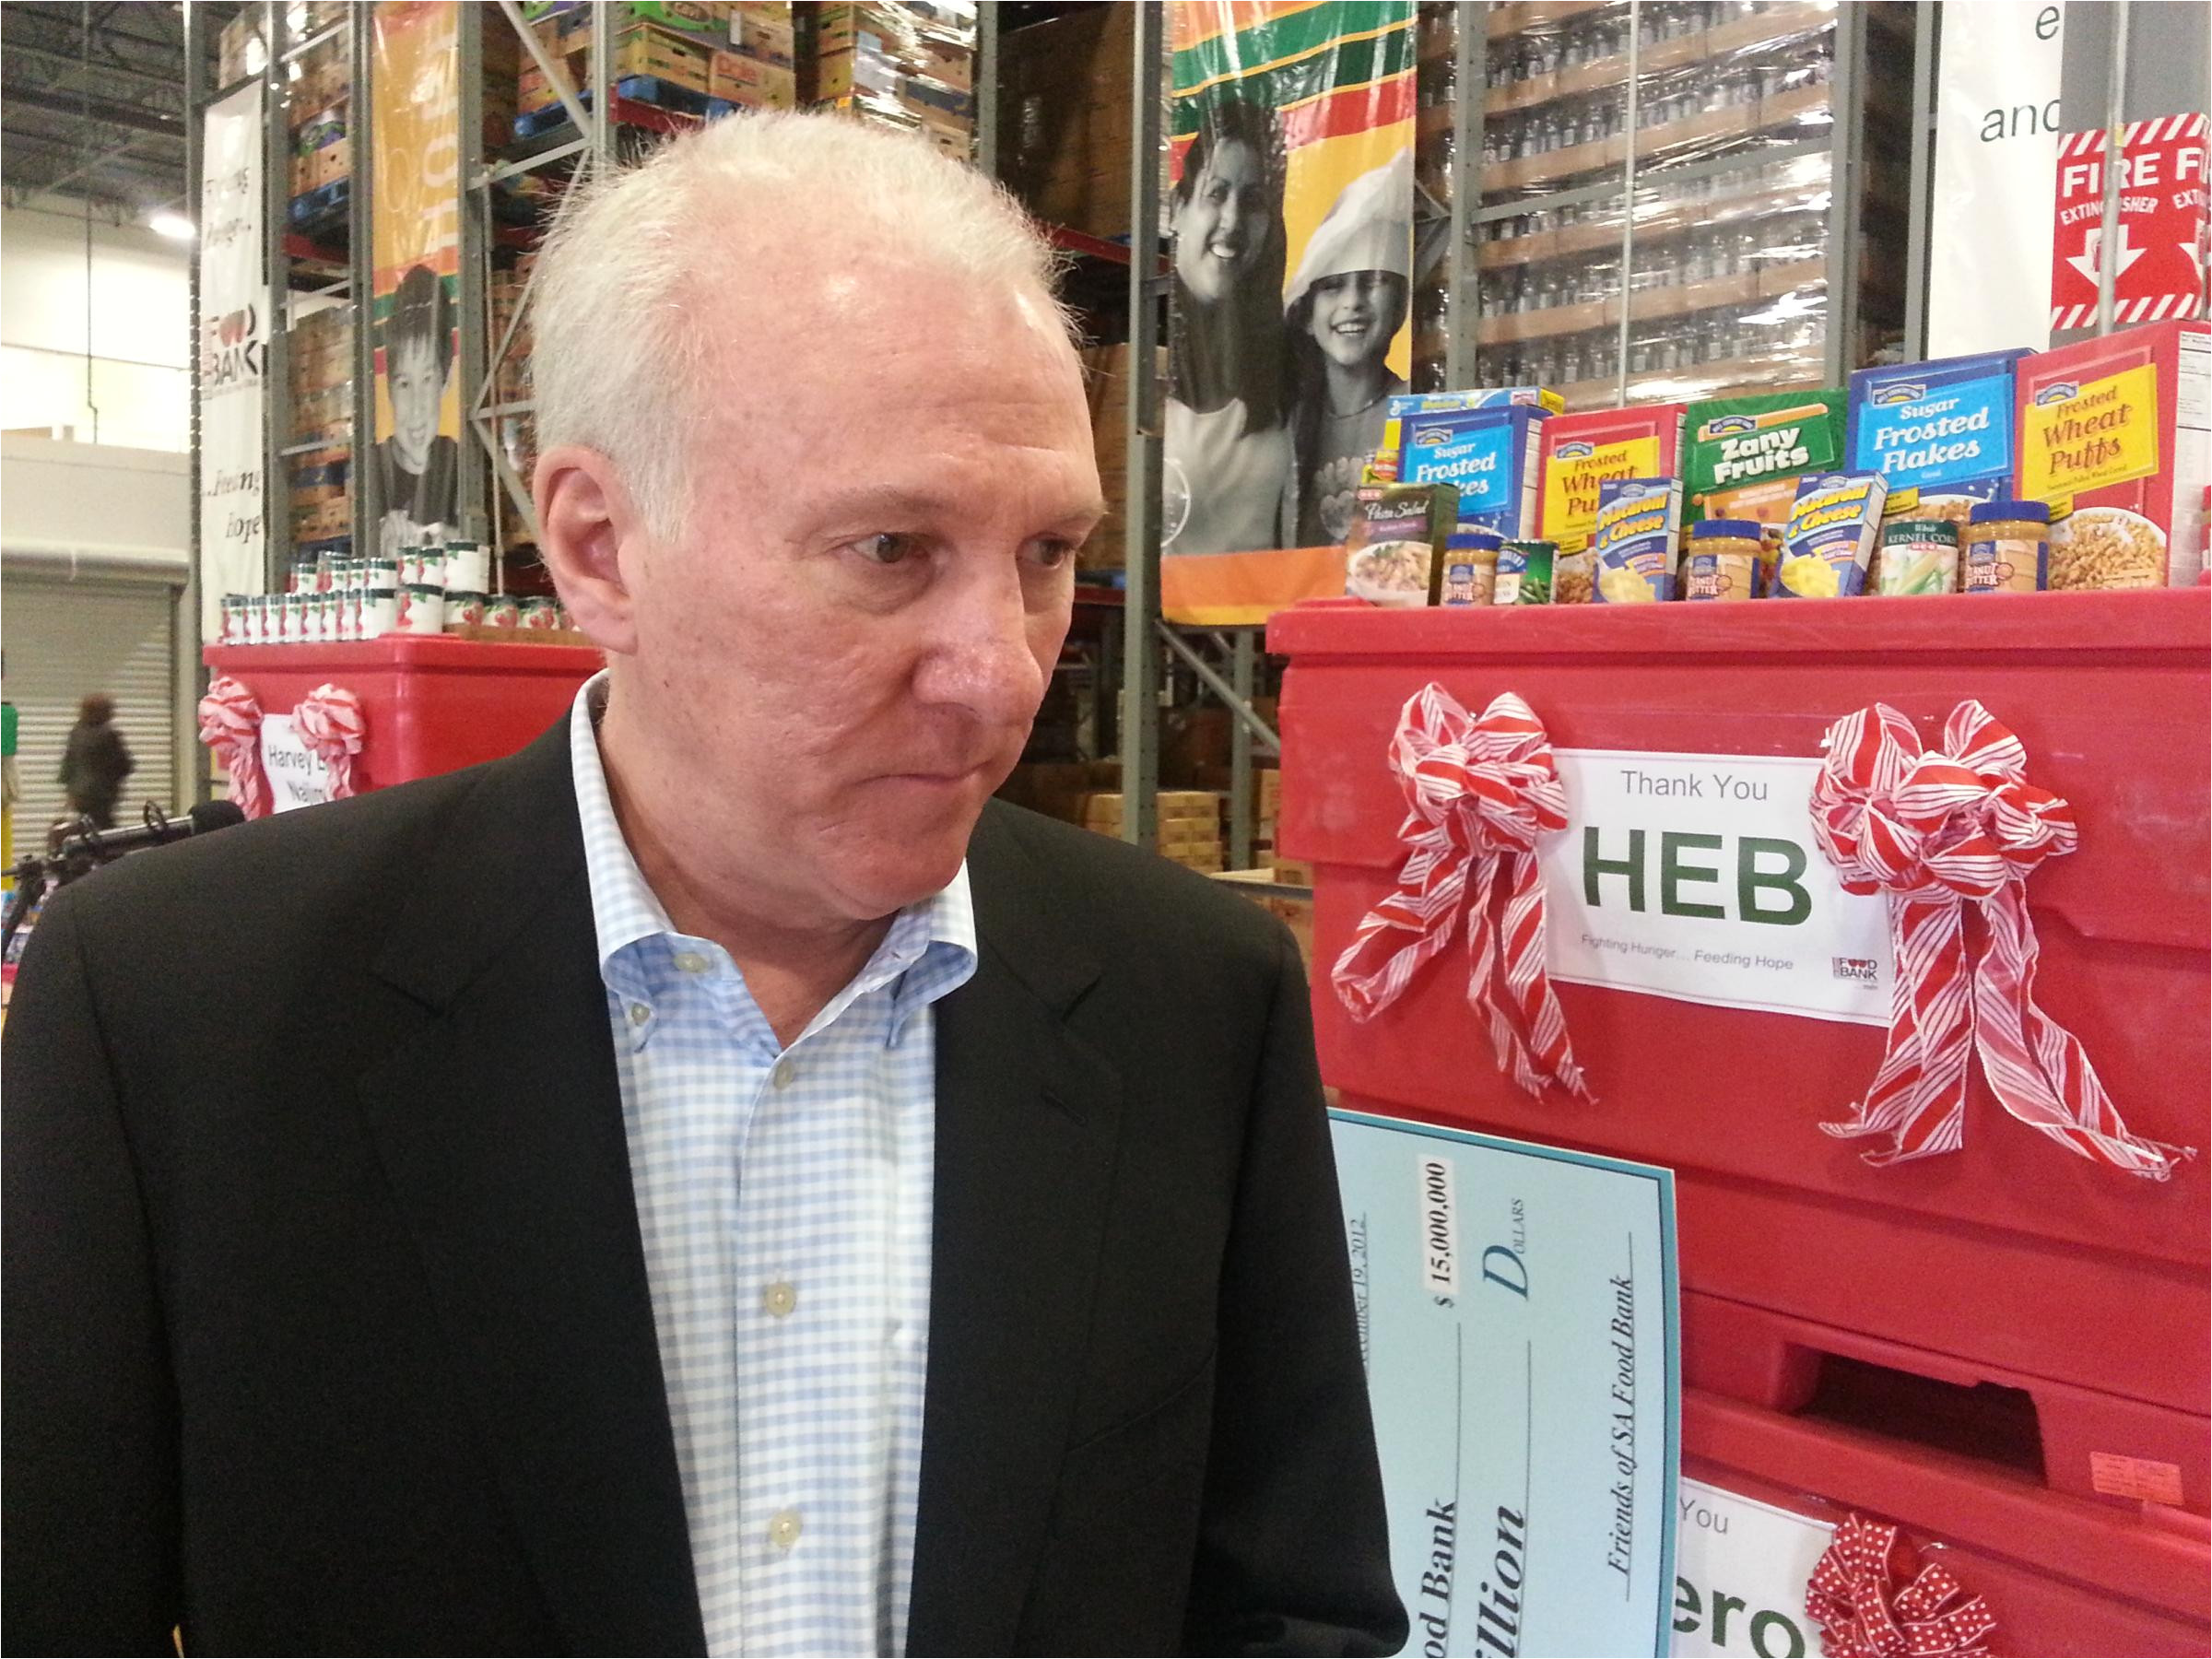 spurs coach gregg popovich describes the hunger situation in san antonio as embarrassing and contributed to the 15 million goal for the food bank s